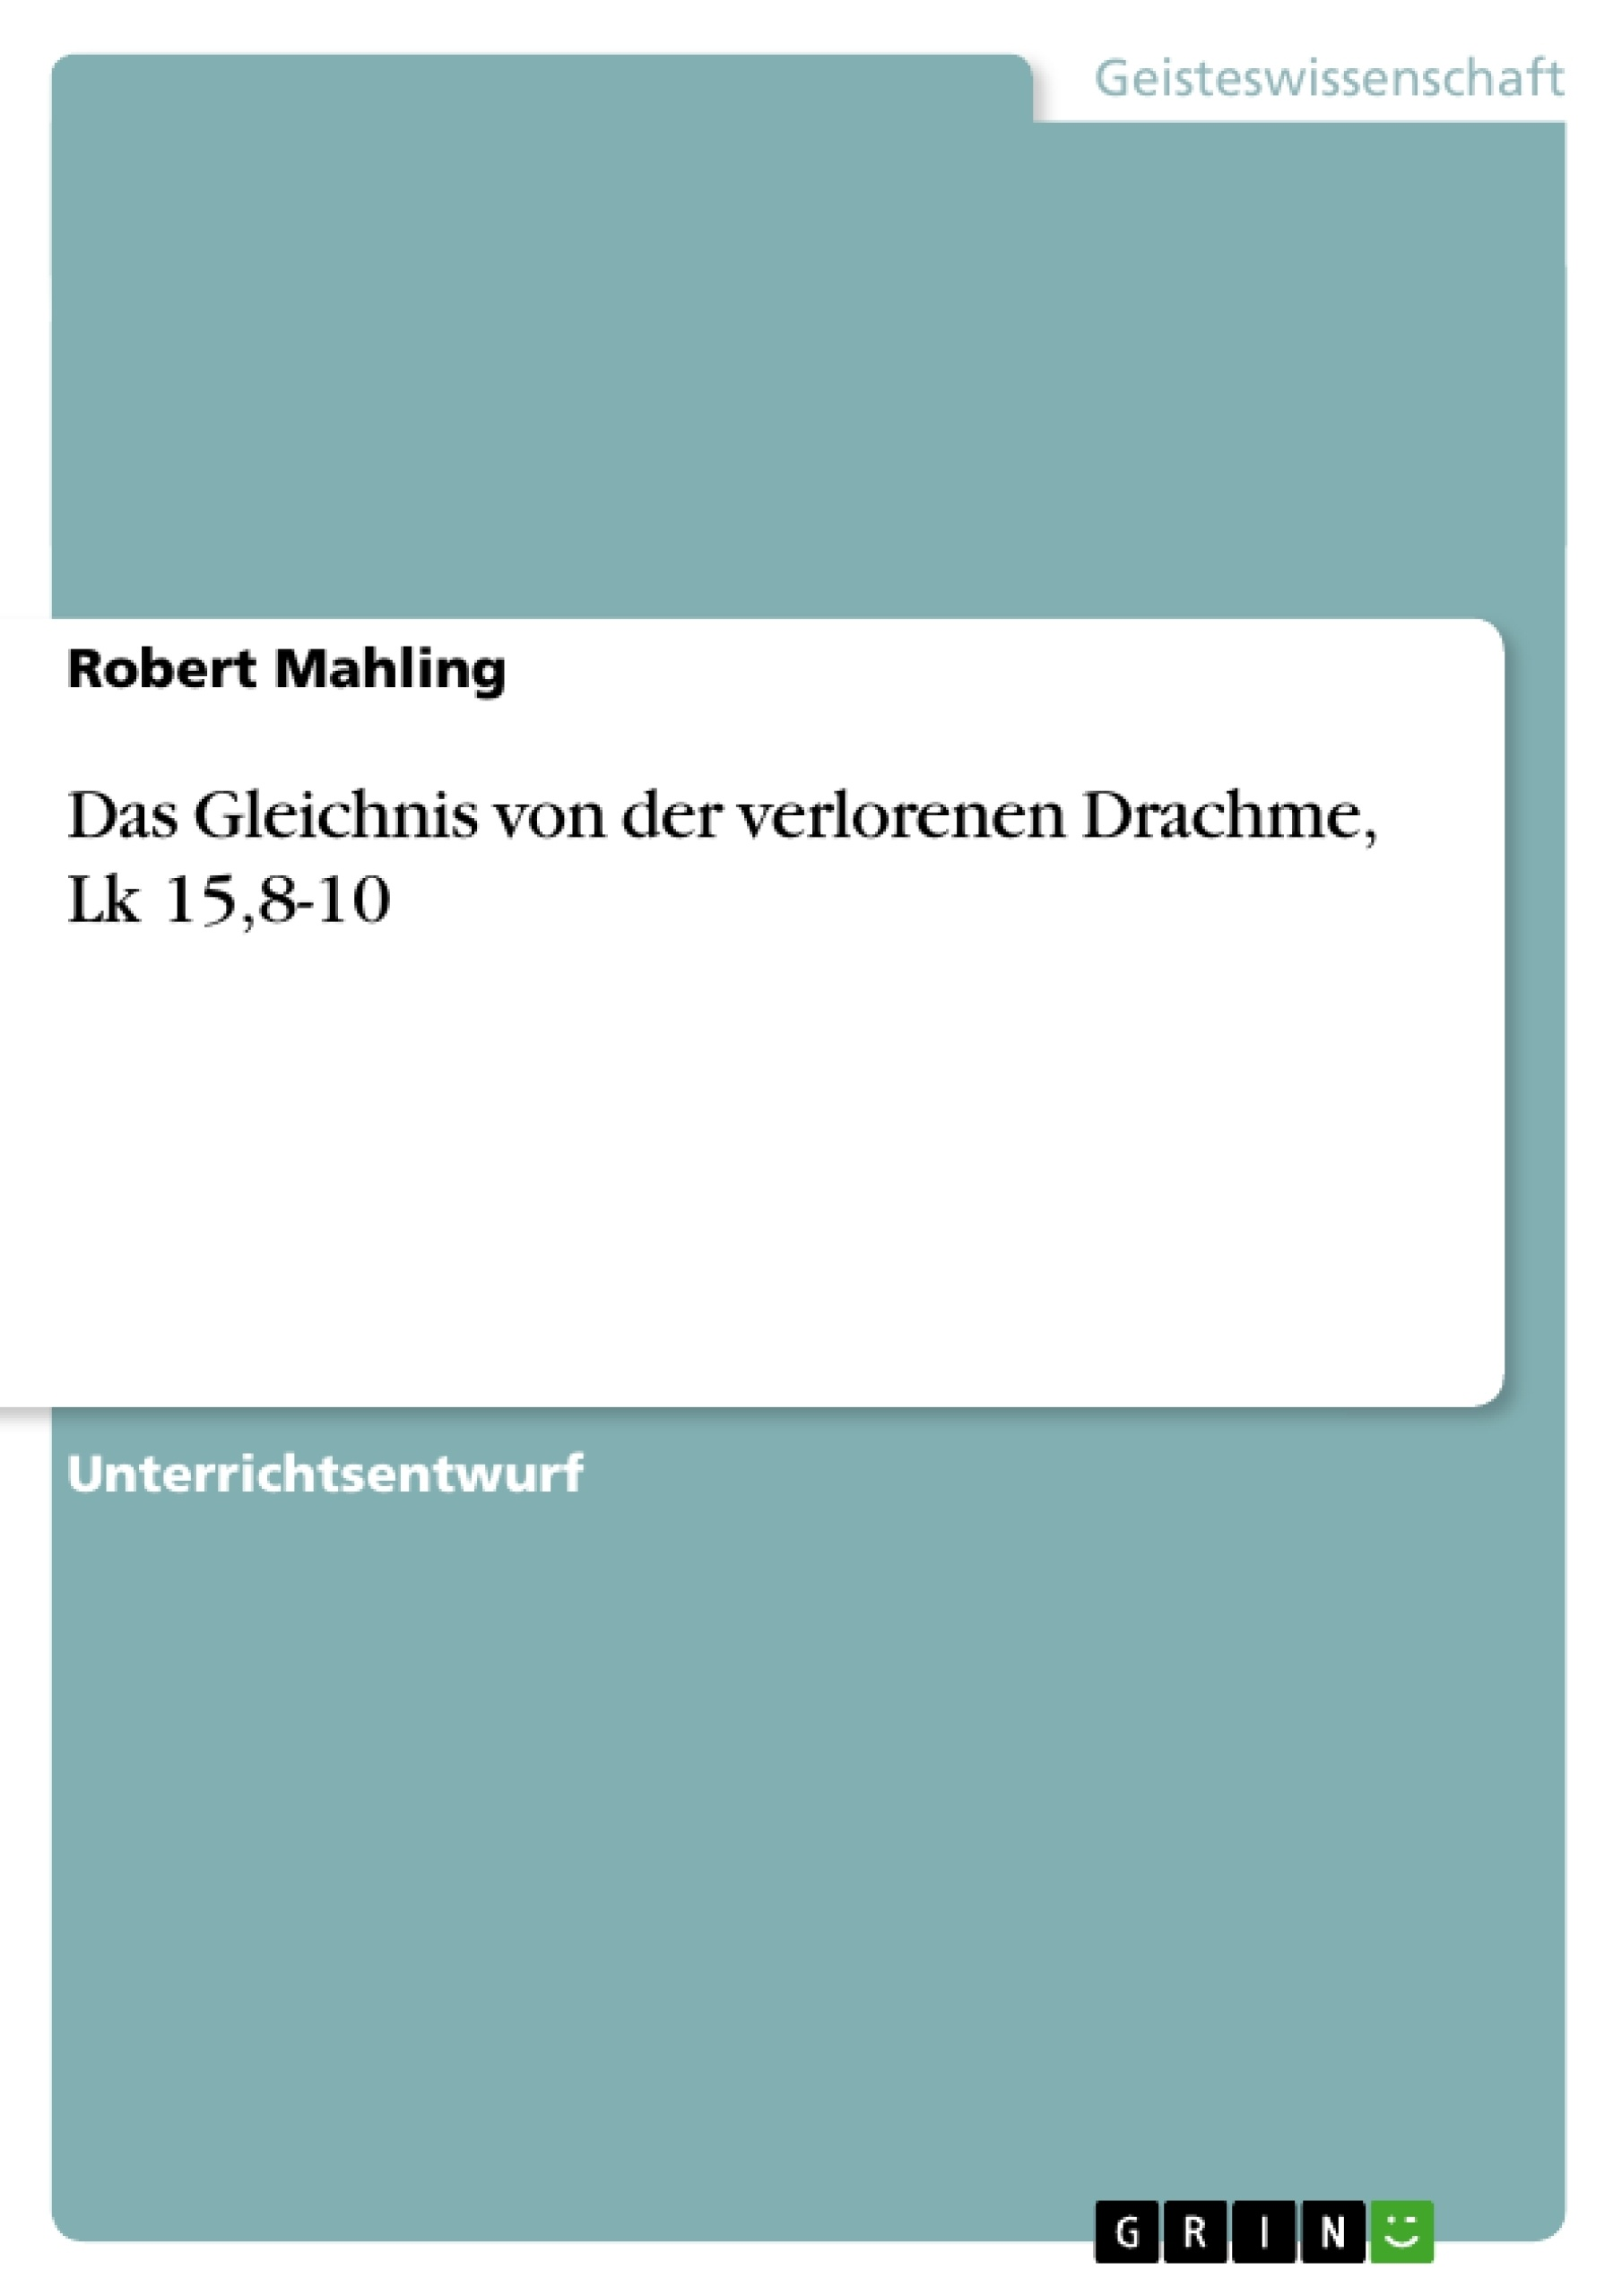 Image Result For Bekannte Zitate In Bachelorarbeit